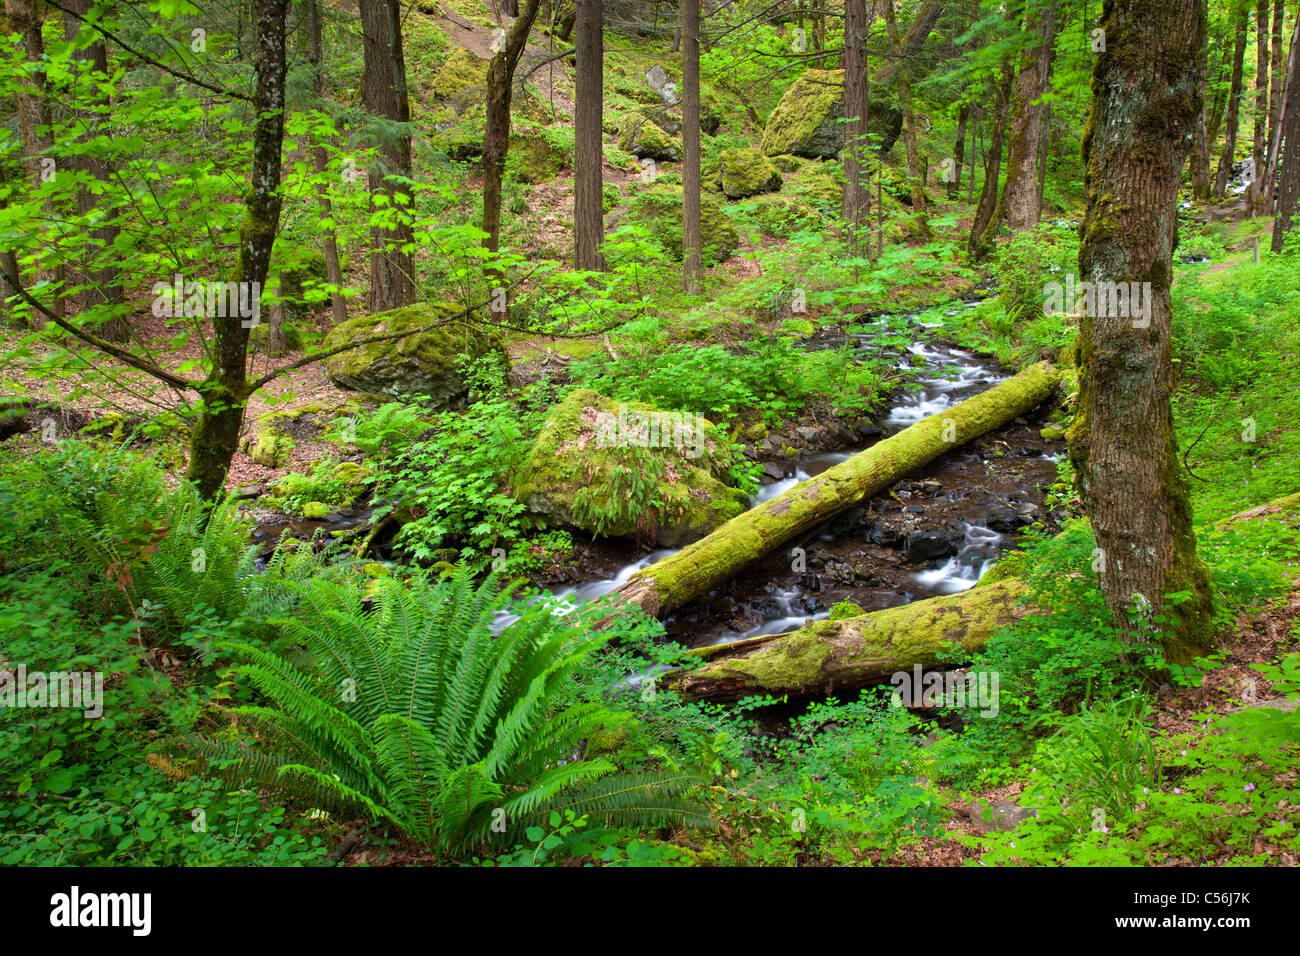 Starvation Creek, Starvation Creek State Park, Columbia River Gorge National Scenic Area, Oregon - Stock Image